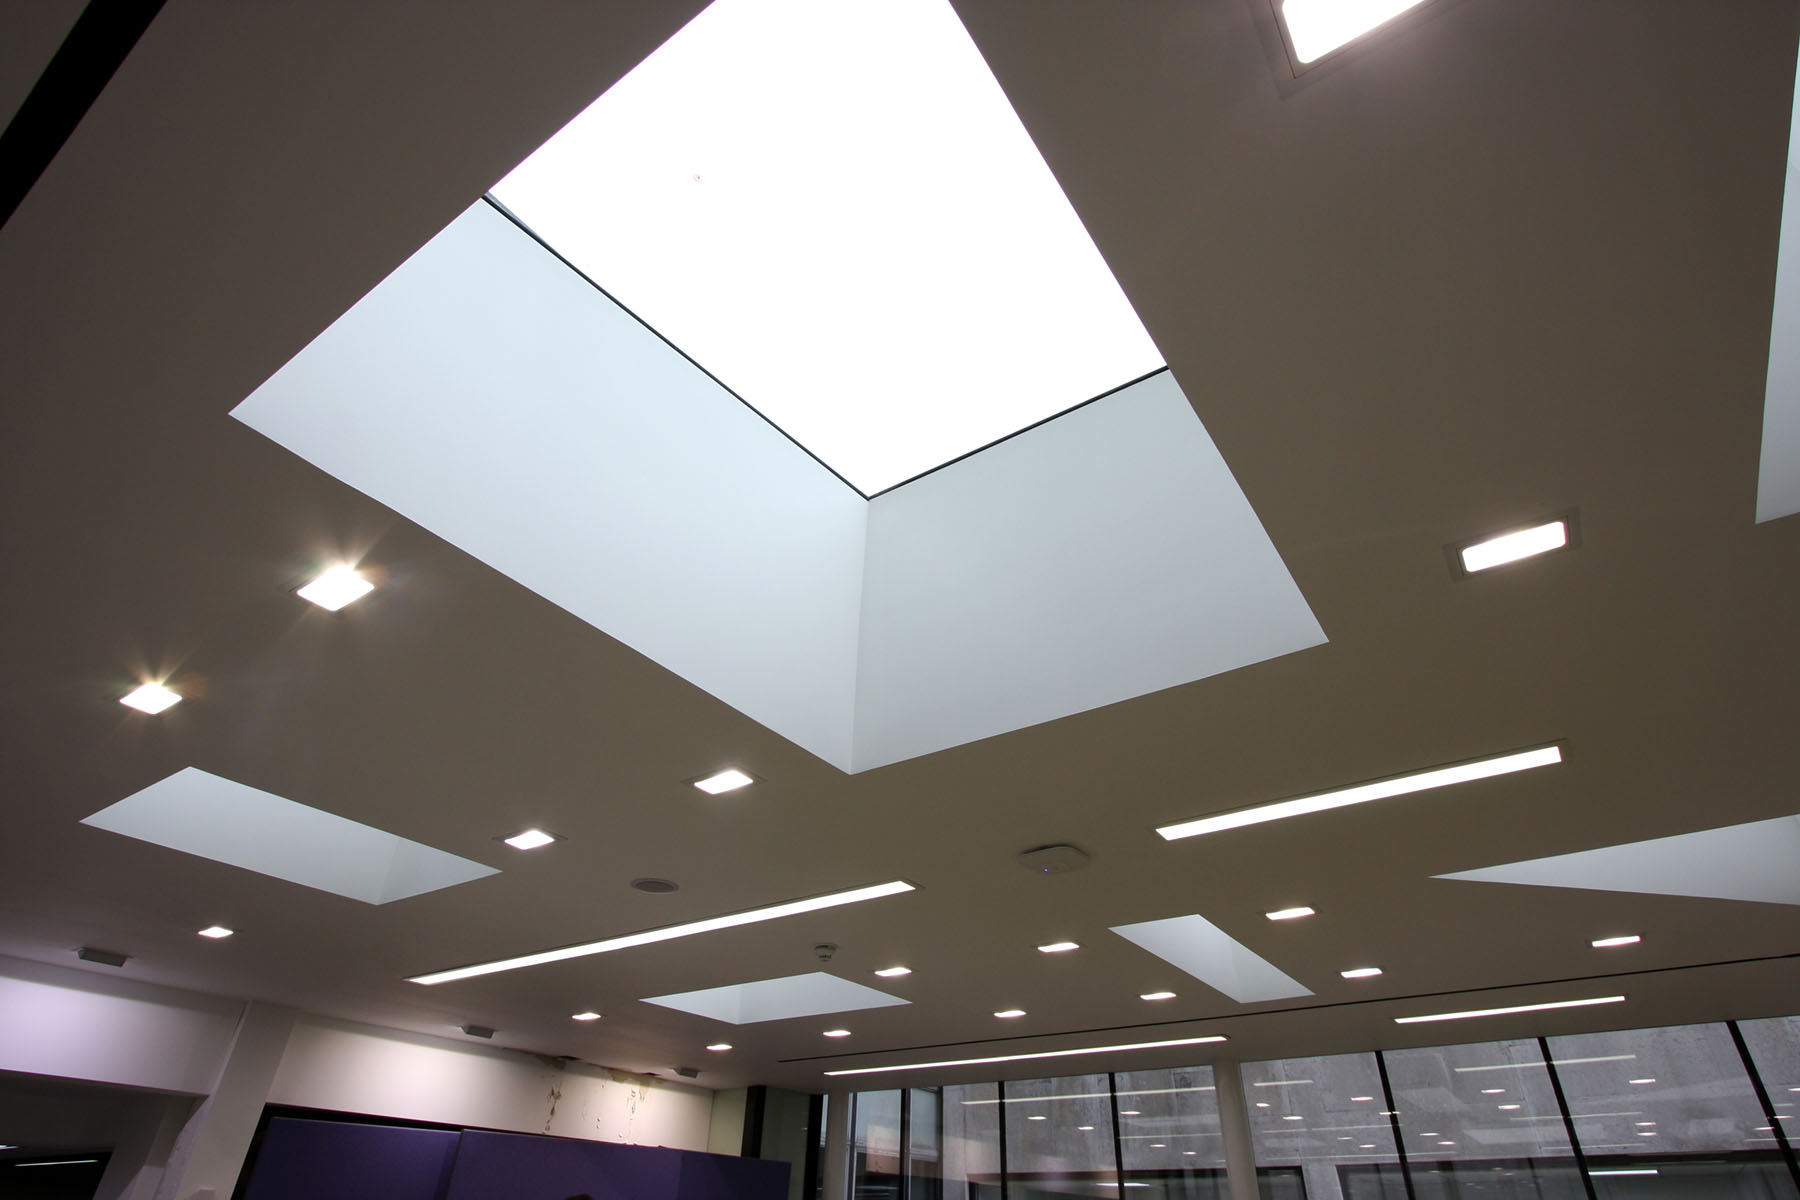 Commercial glazing venting rooflights